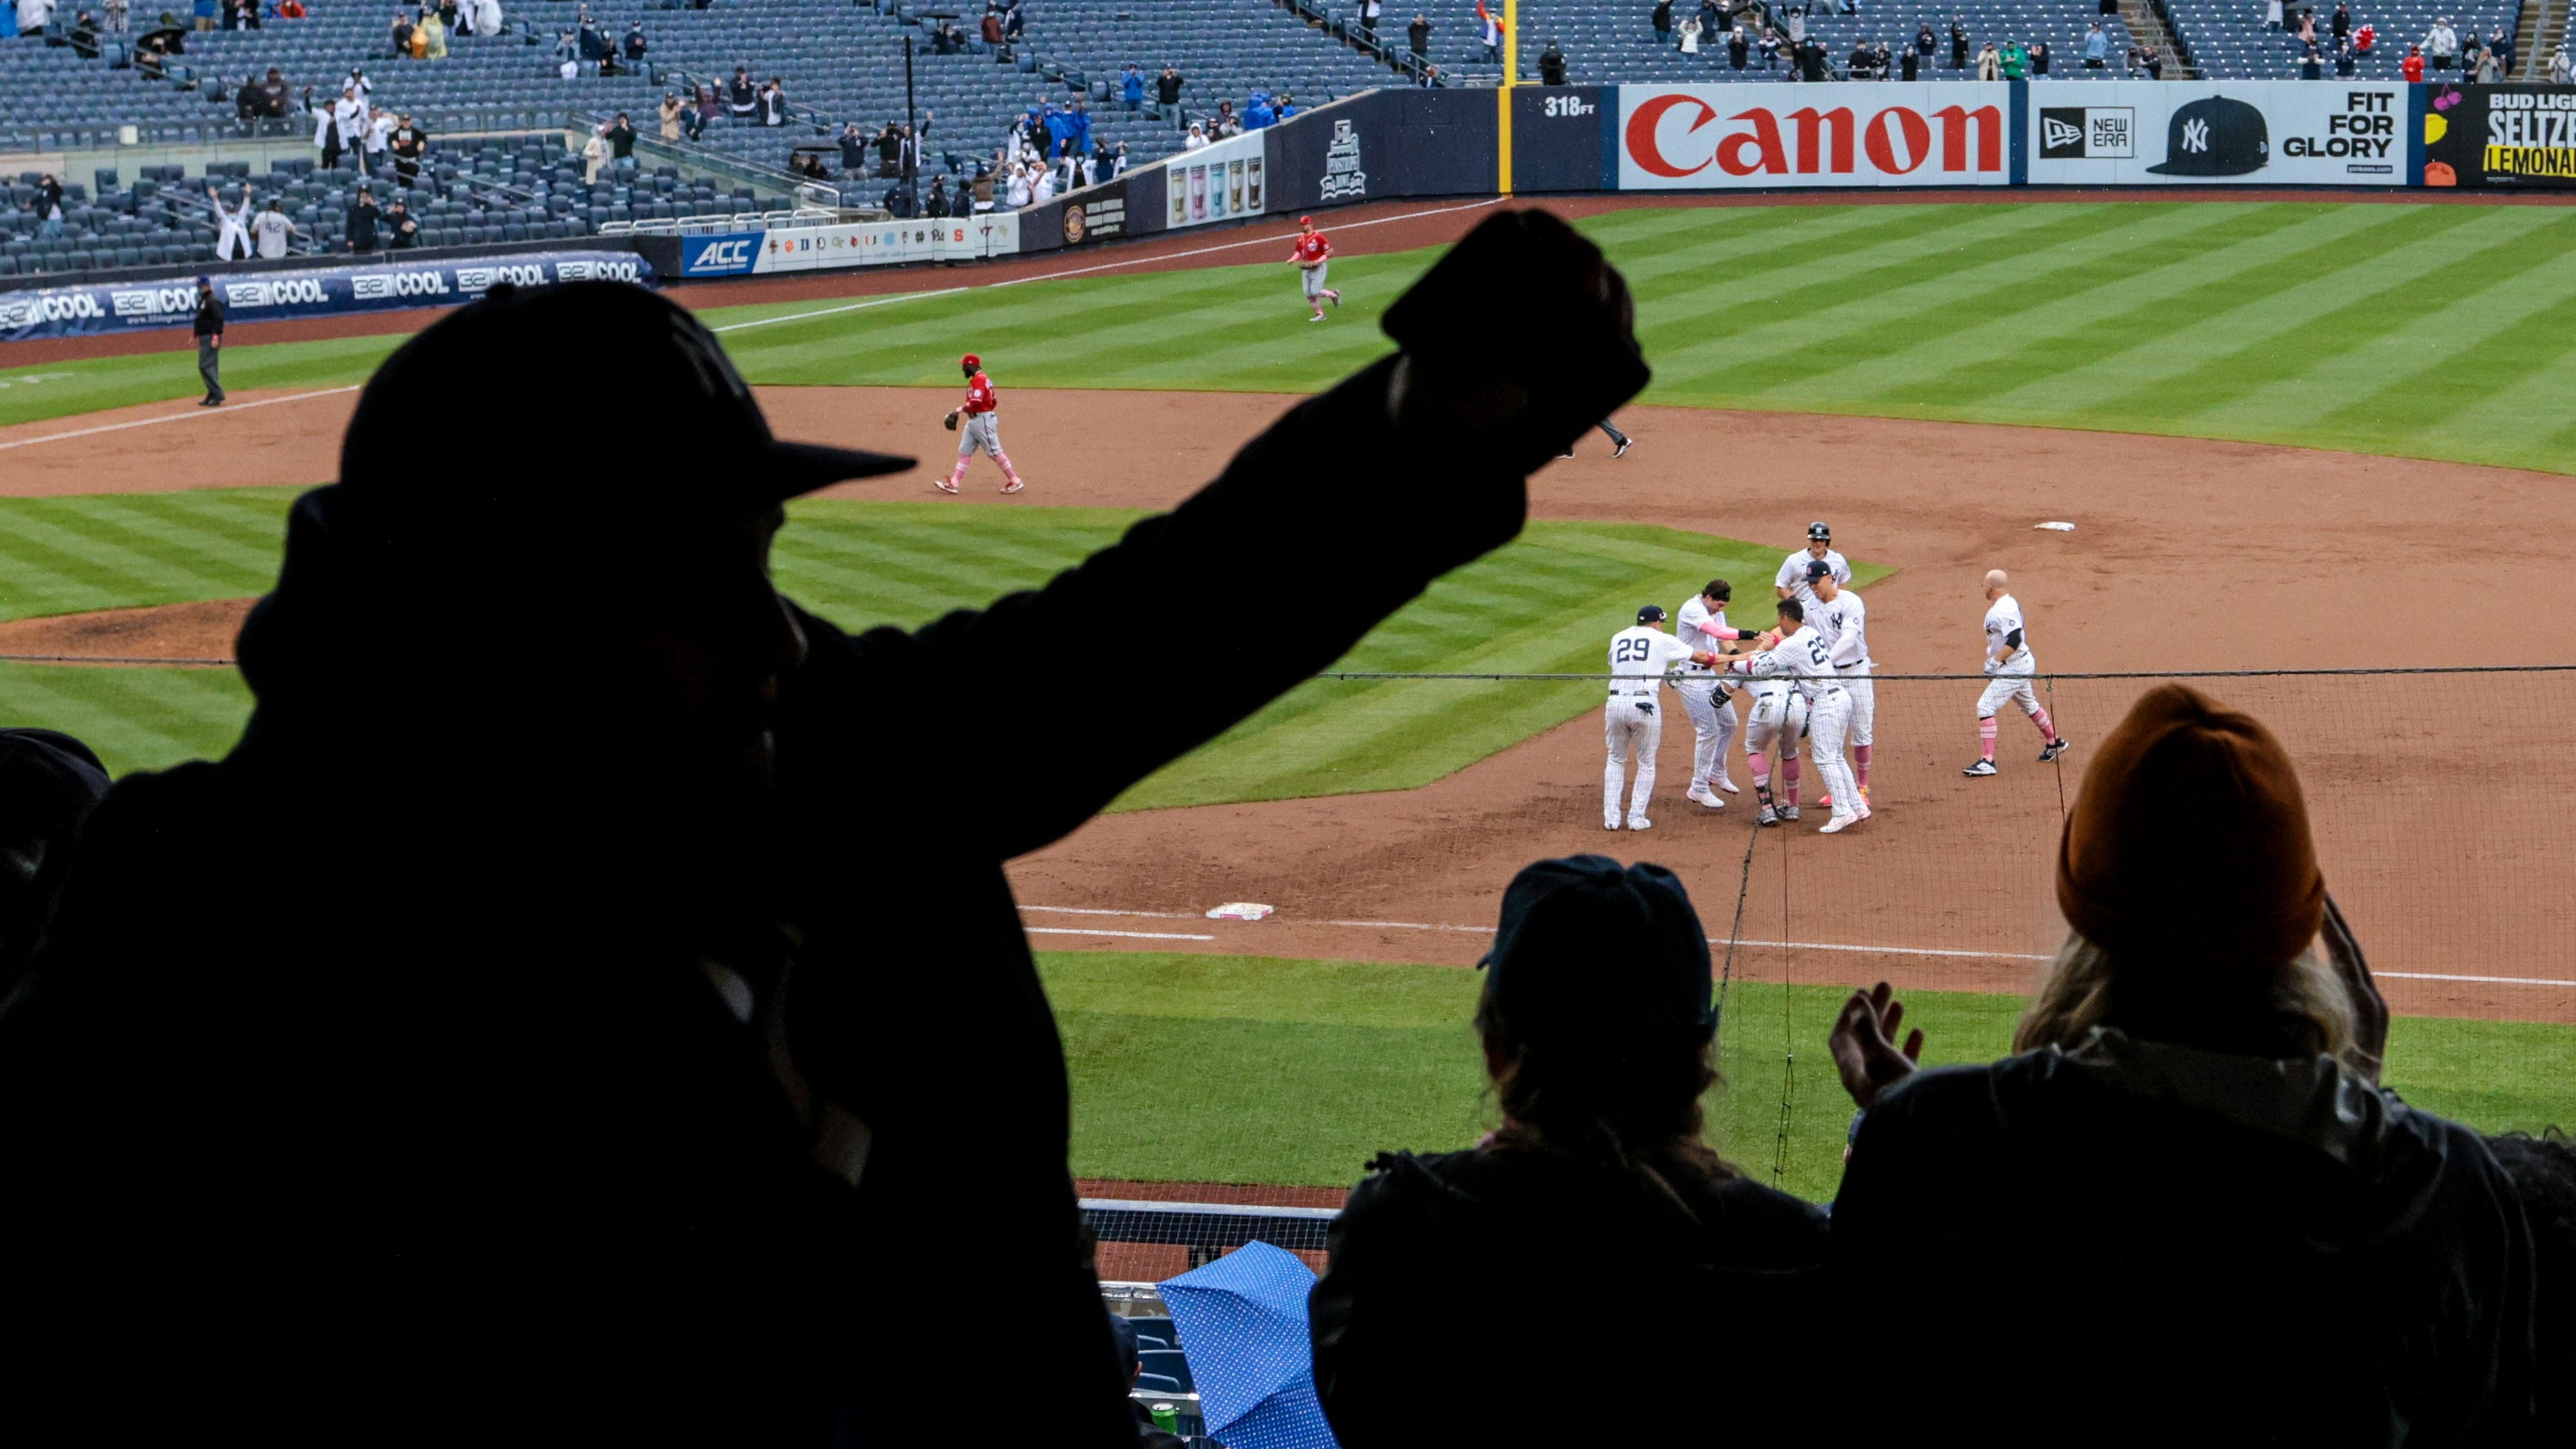 MLB teams plan to fully reopen stadiums soon — but are fans ready to come back?